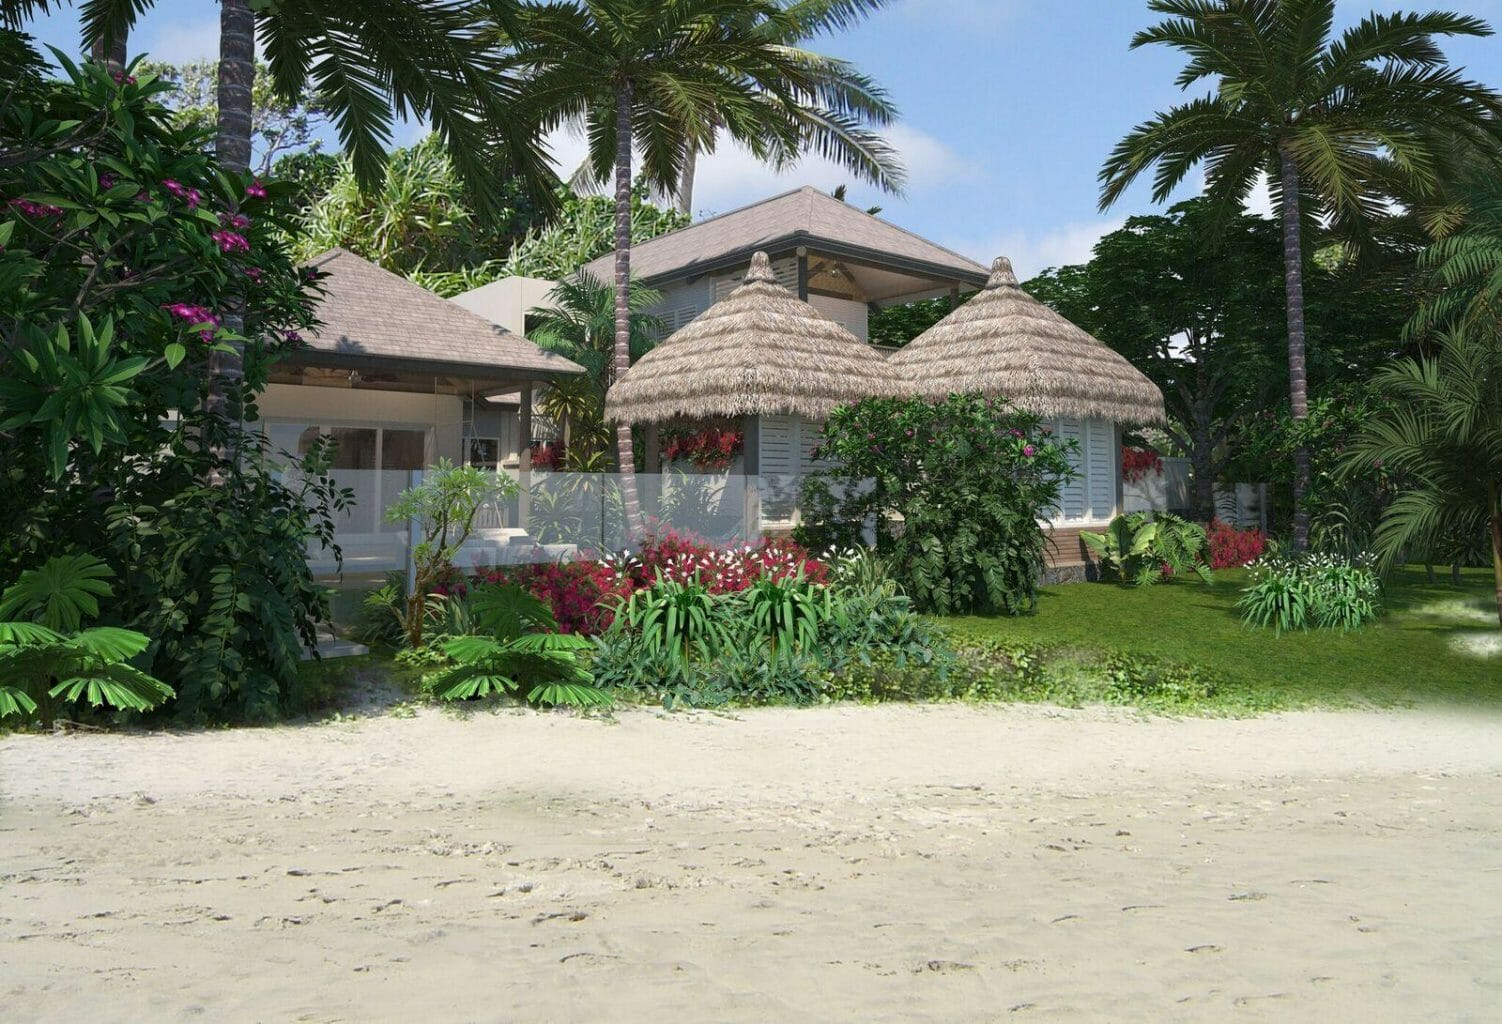 View of thatched-roof villas from sandy beach